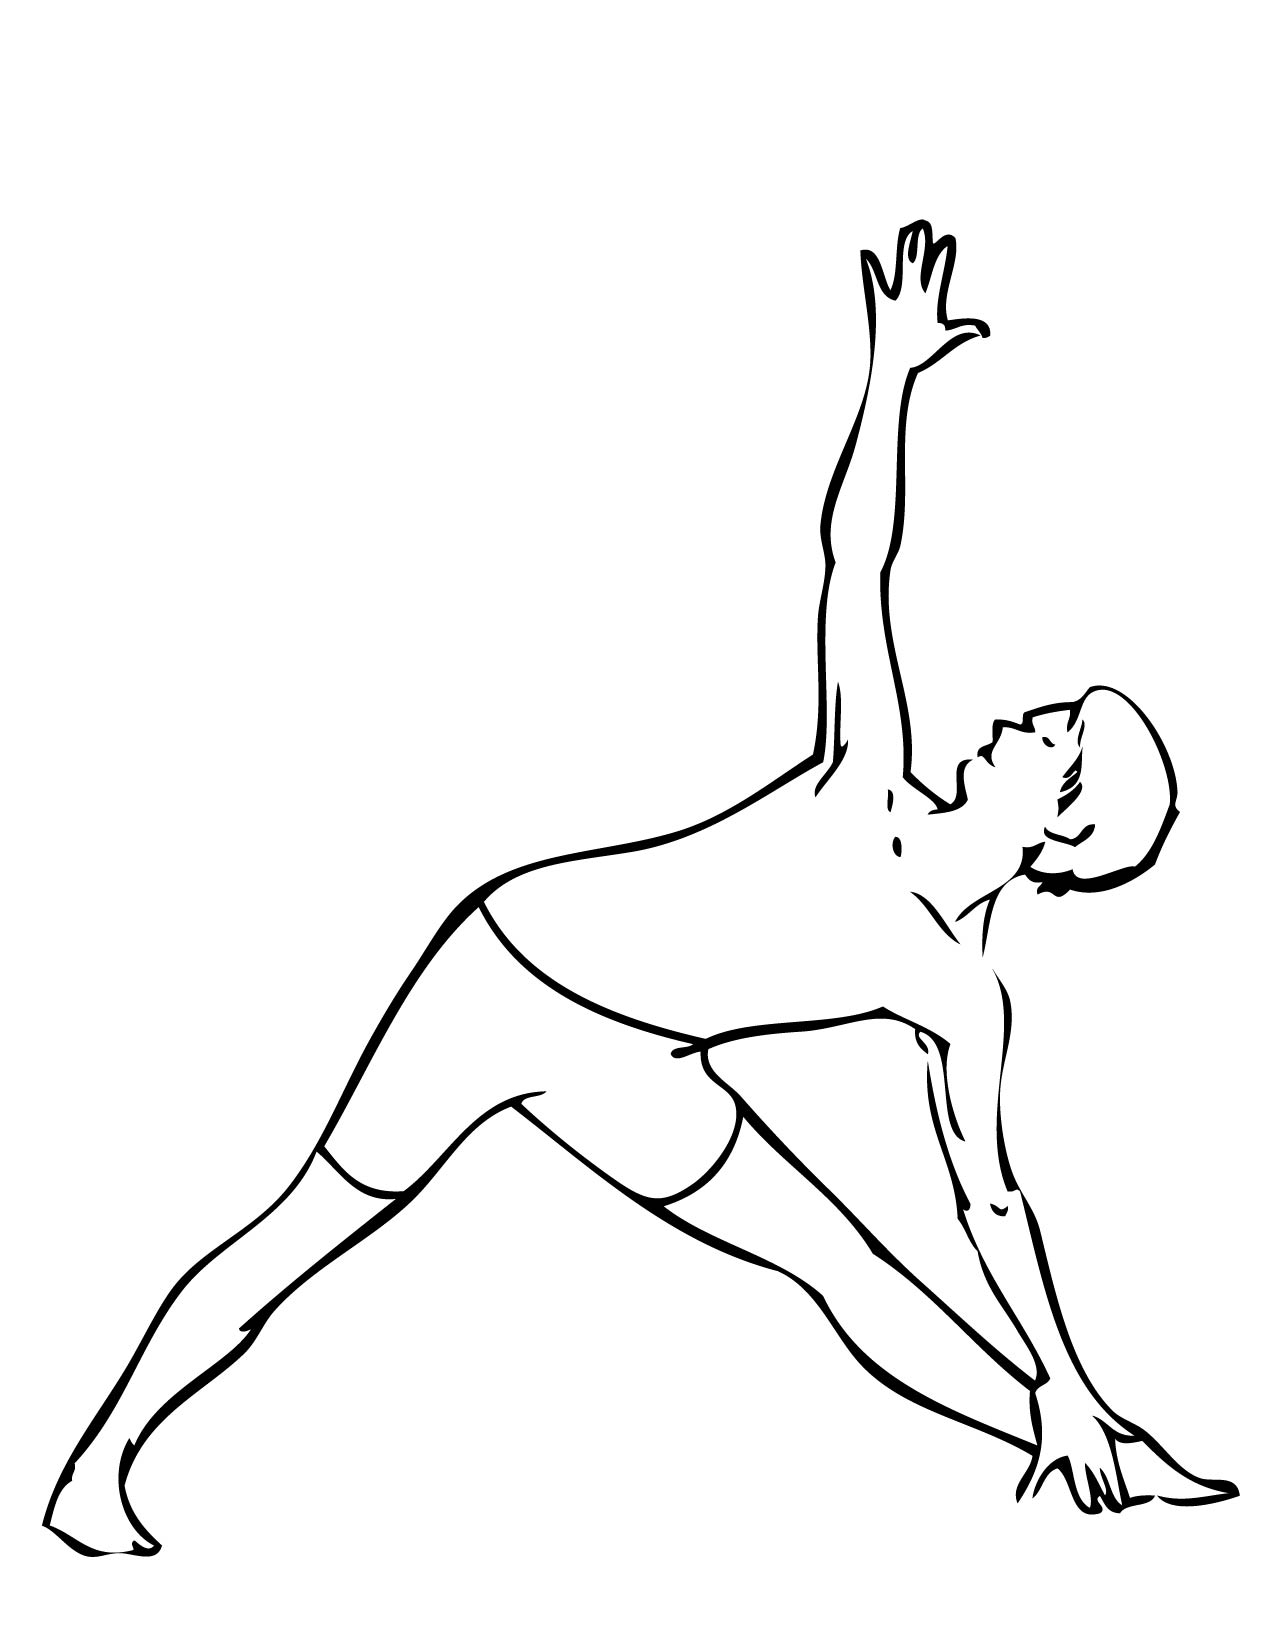 picture about Free Printable Yoga Poses referred to as Free of charge Yoga Coloring Web pages at  No cost for